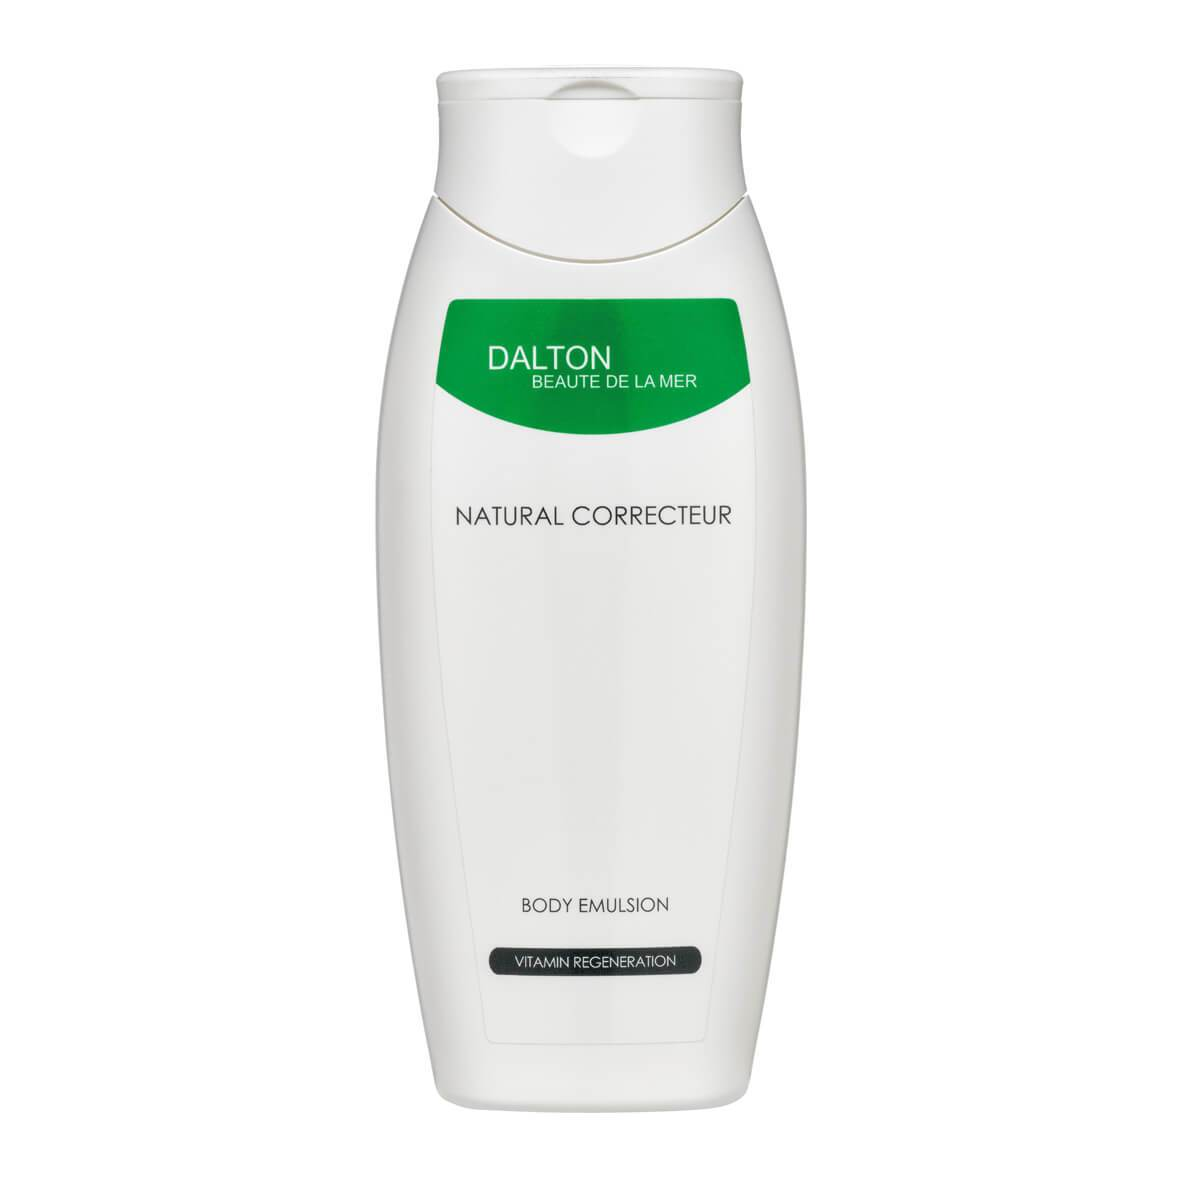 Emulsie corp, Natural Correcteur Body Emulsion 250 ml., Dalton Marine Cosmetics, Era Cosmetics